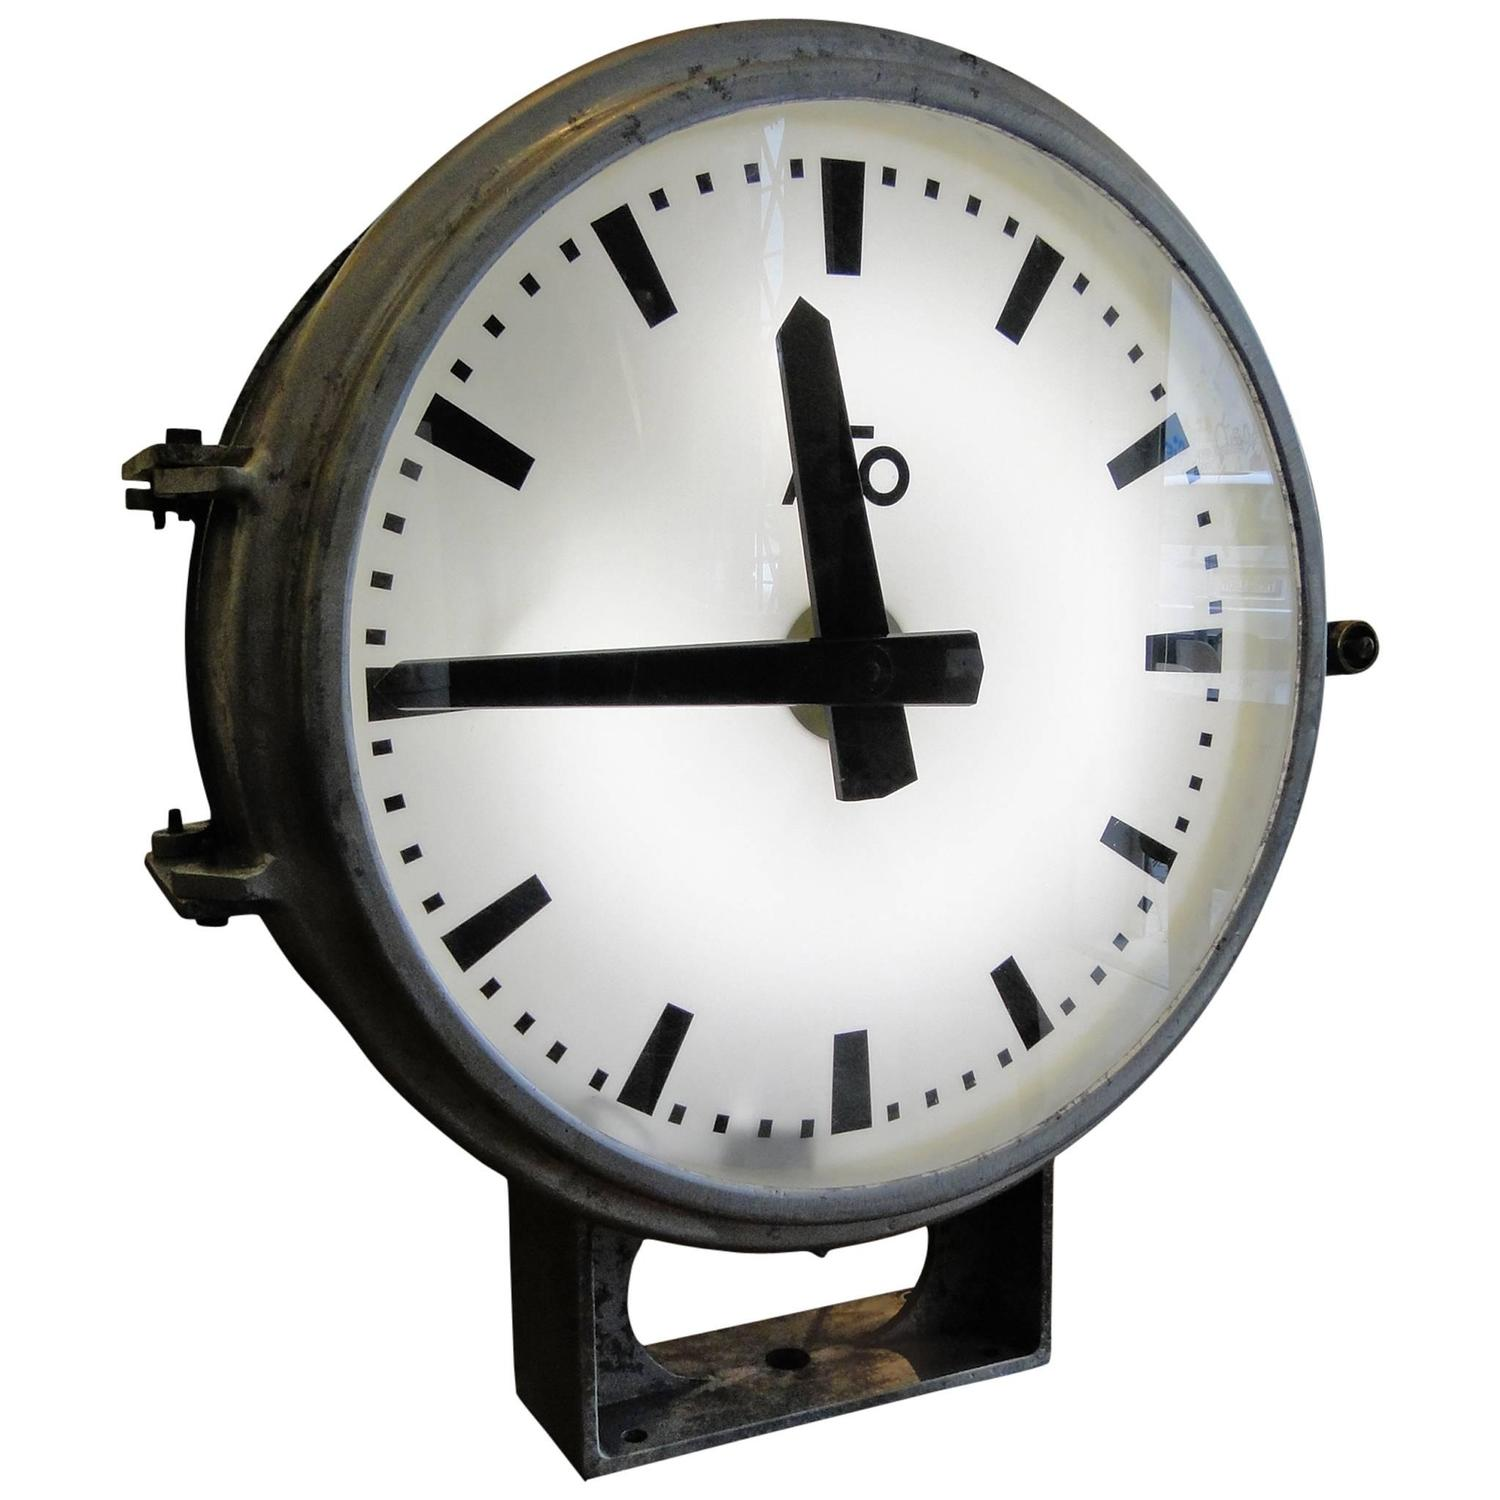 Vintage french ato brillie station railway clock factory vintage french ato brillie station railway clock factory industrial double side at 1stdibs amipublicfo Gallery